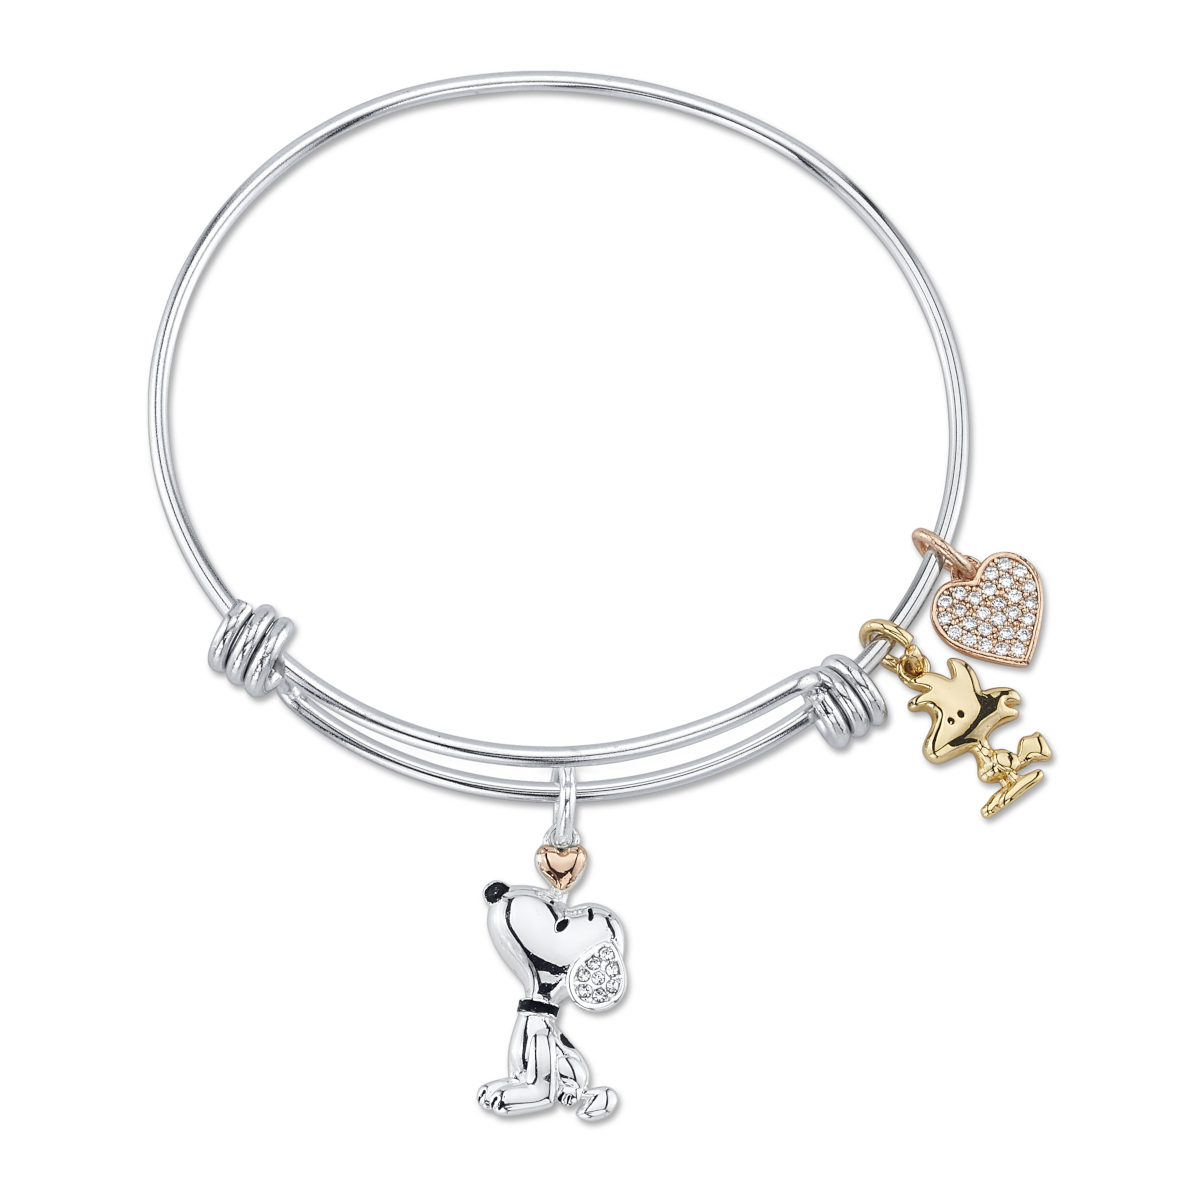 image Peanuts-Snoopy-And-Woodstock-Crystal-Charm-Bracelet-Main-Image